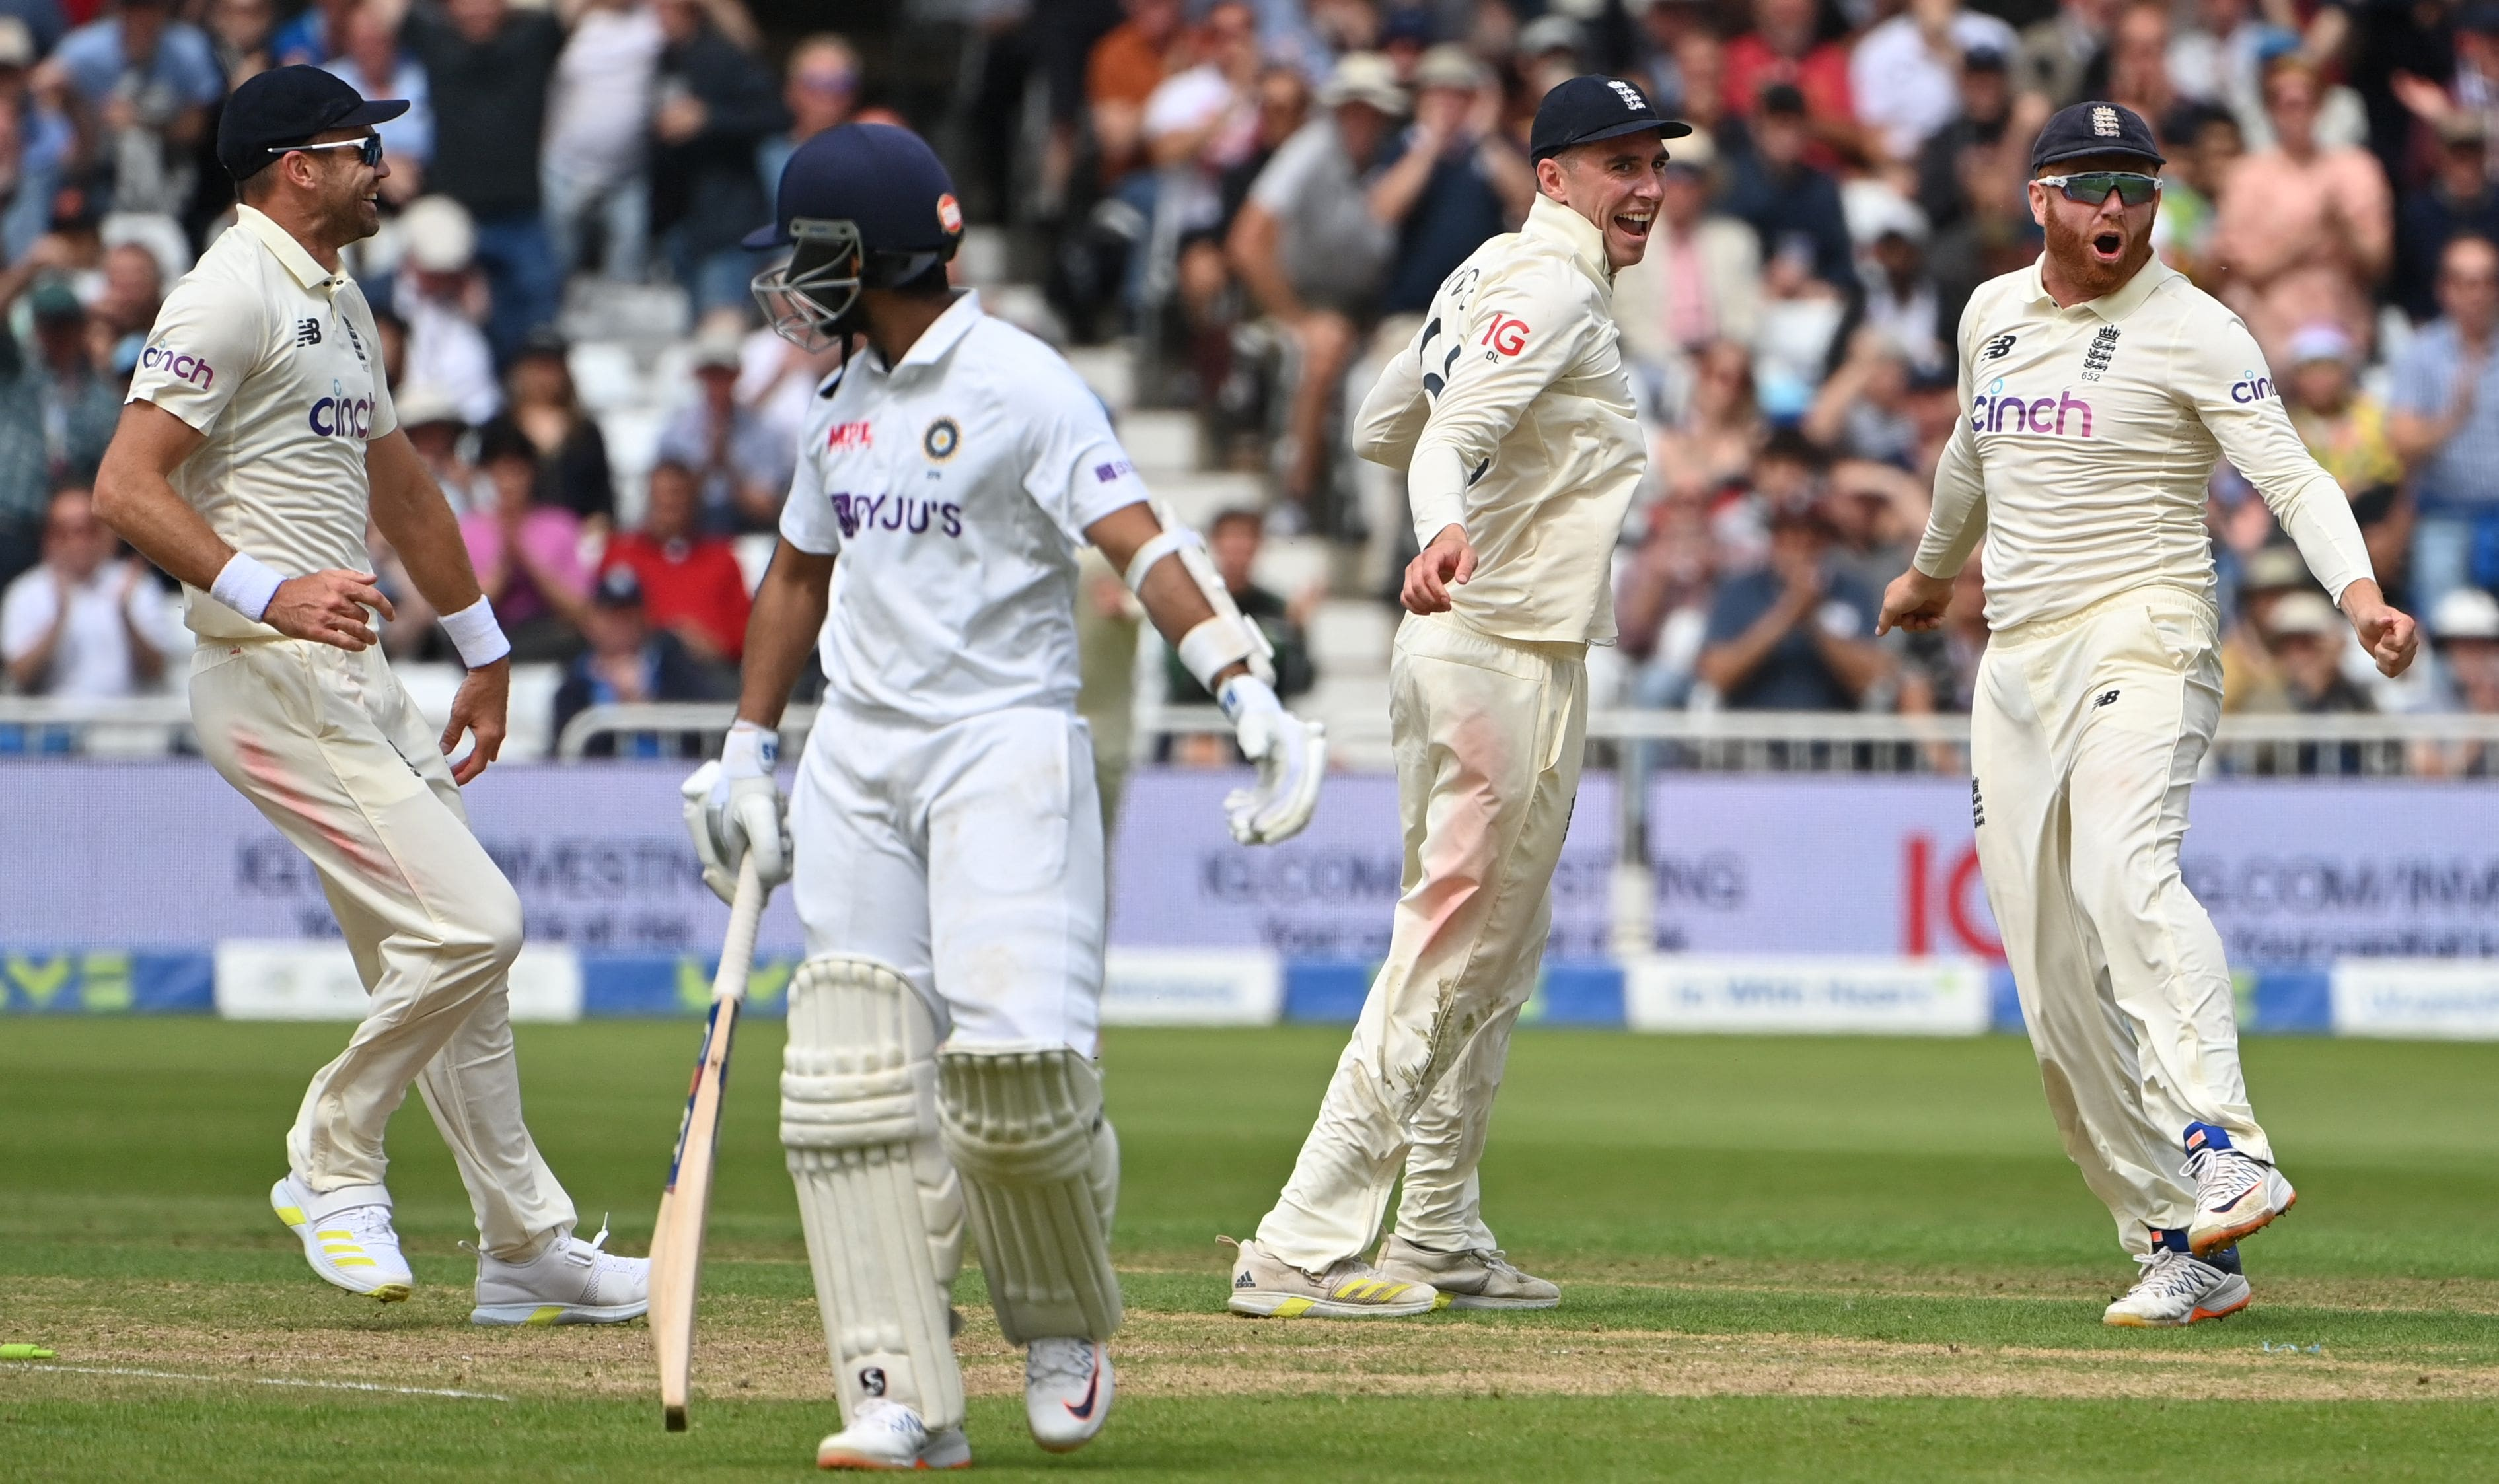 James Anderson Shines For England on Rain-Hit Day